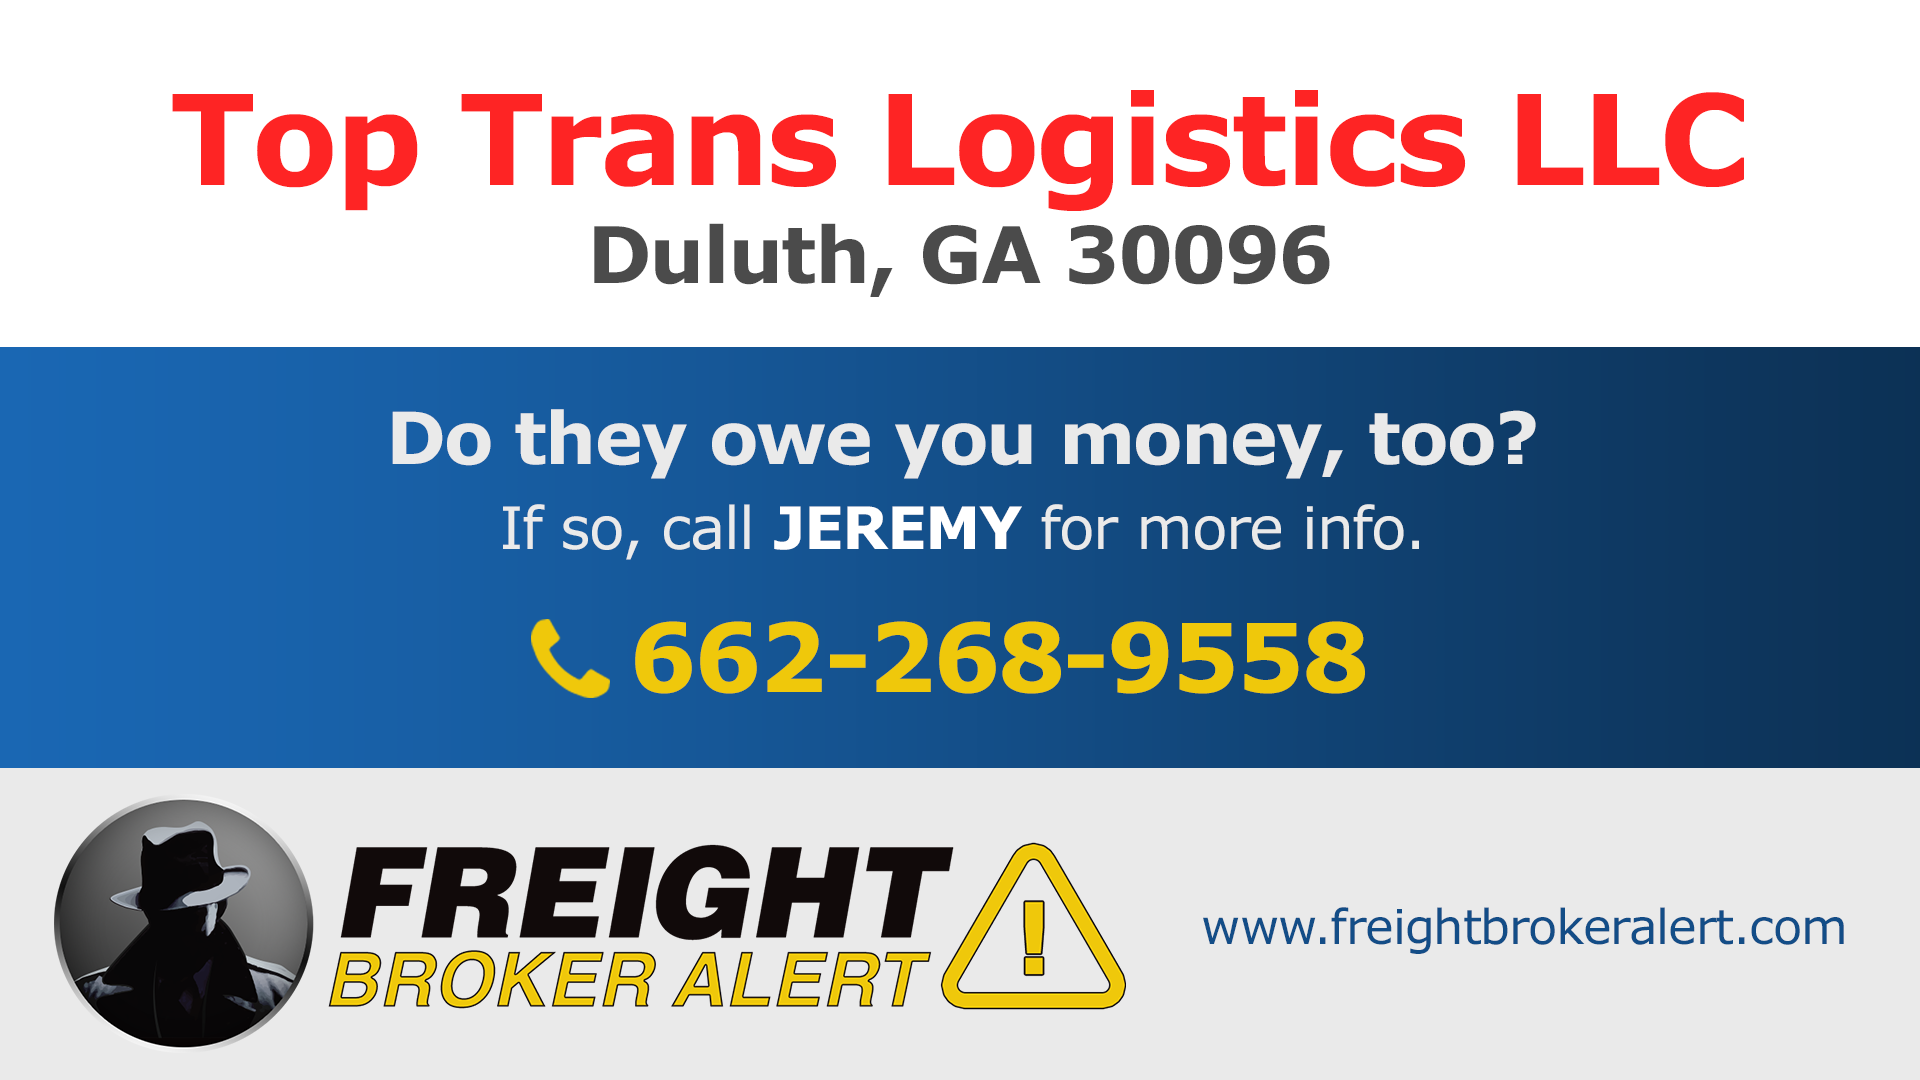 Top Trans Logistics LLC Georgia